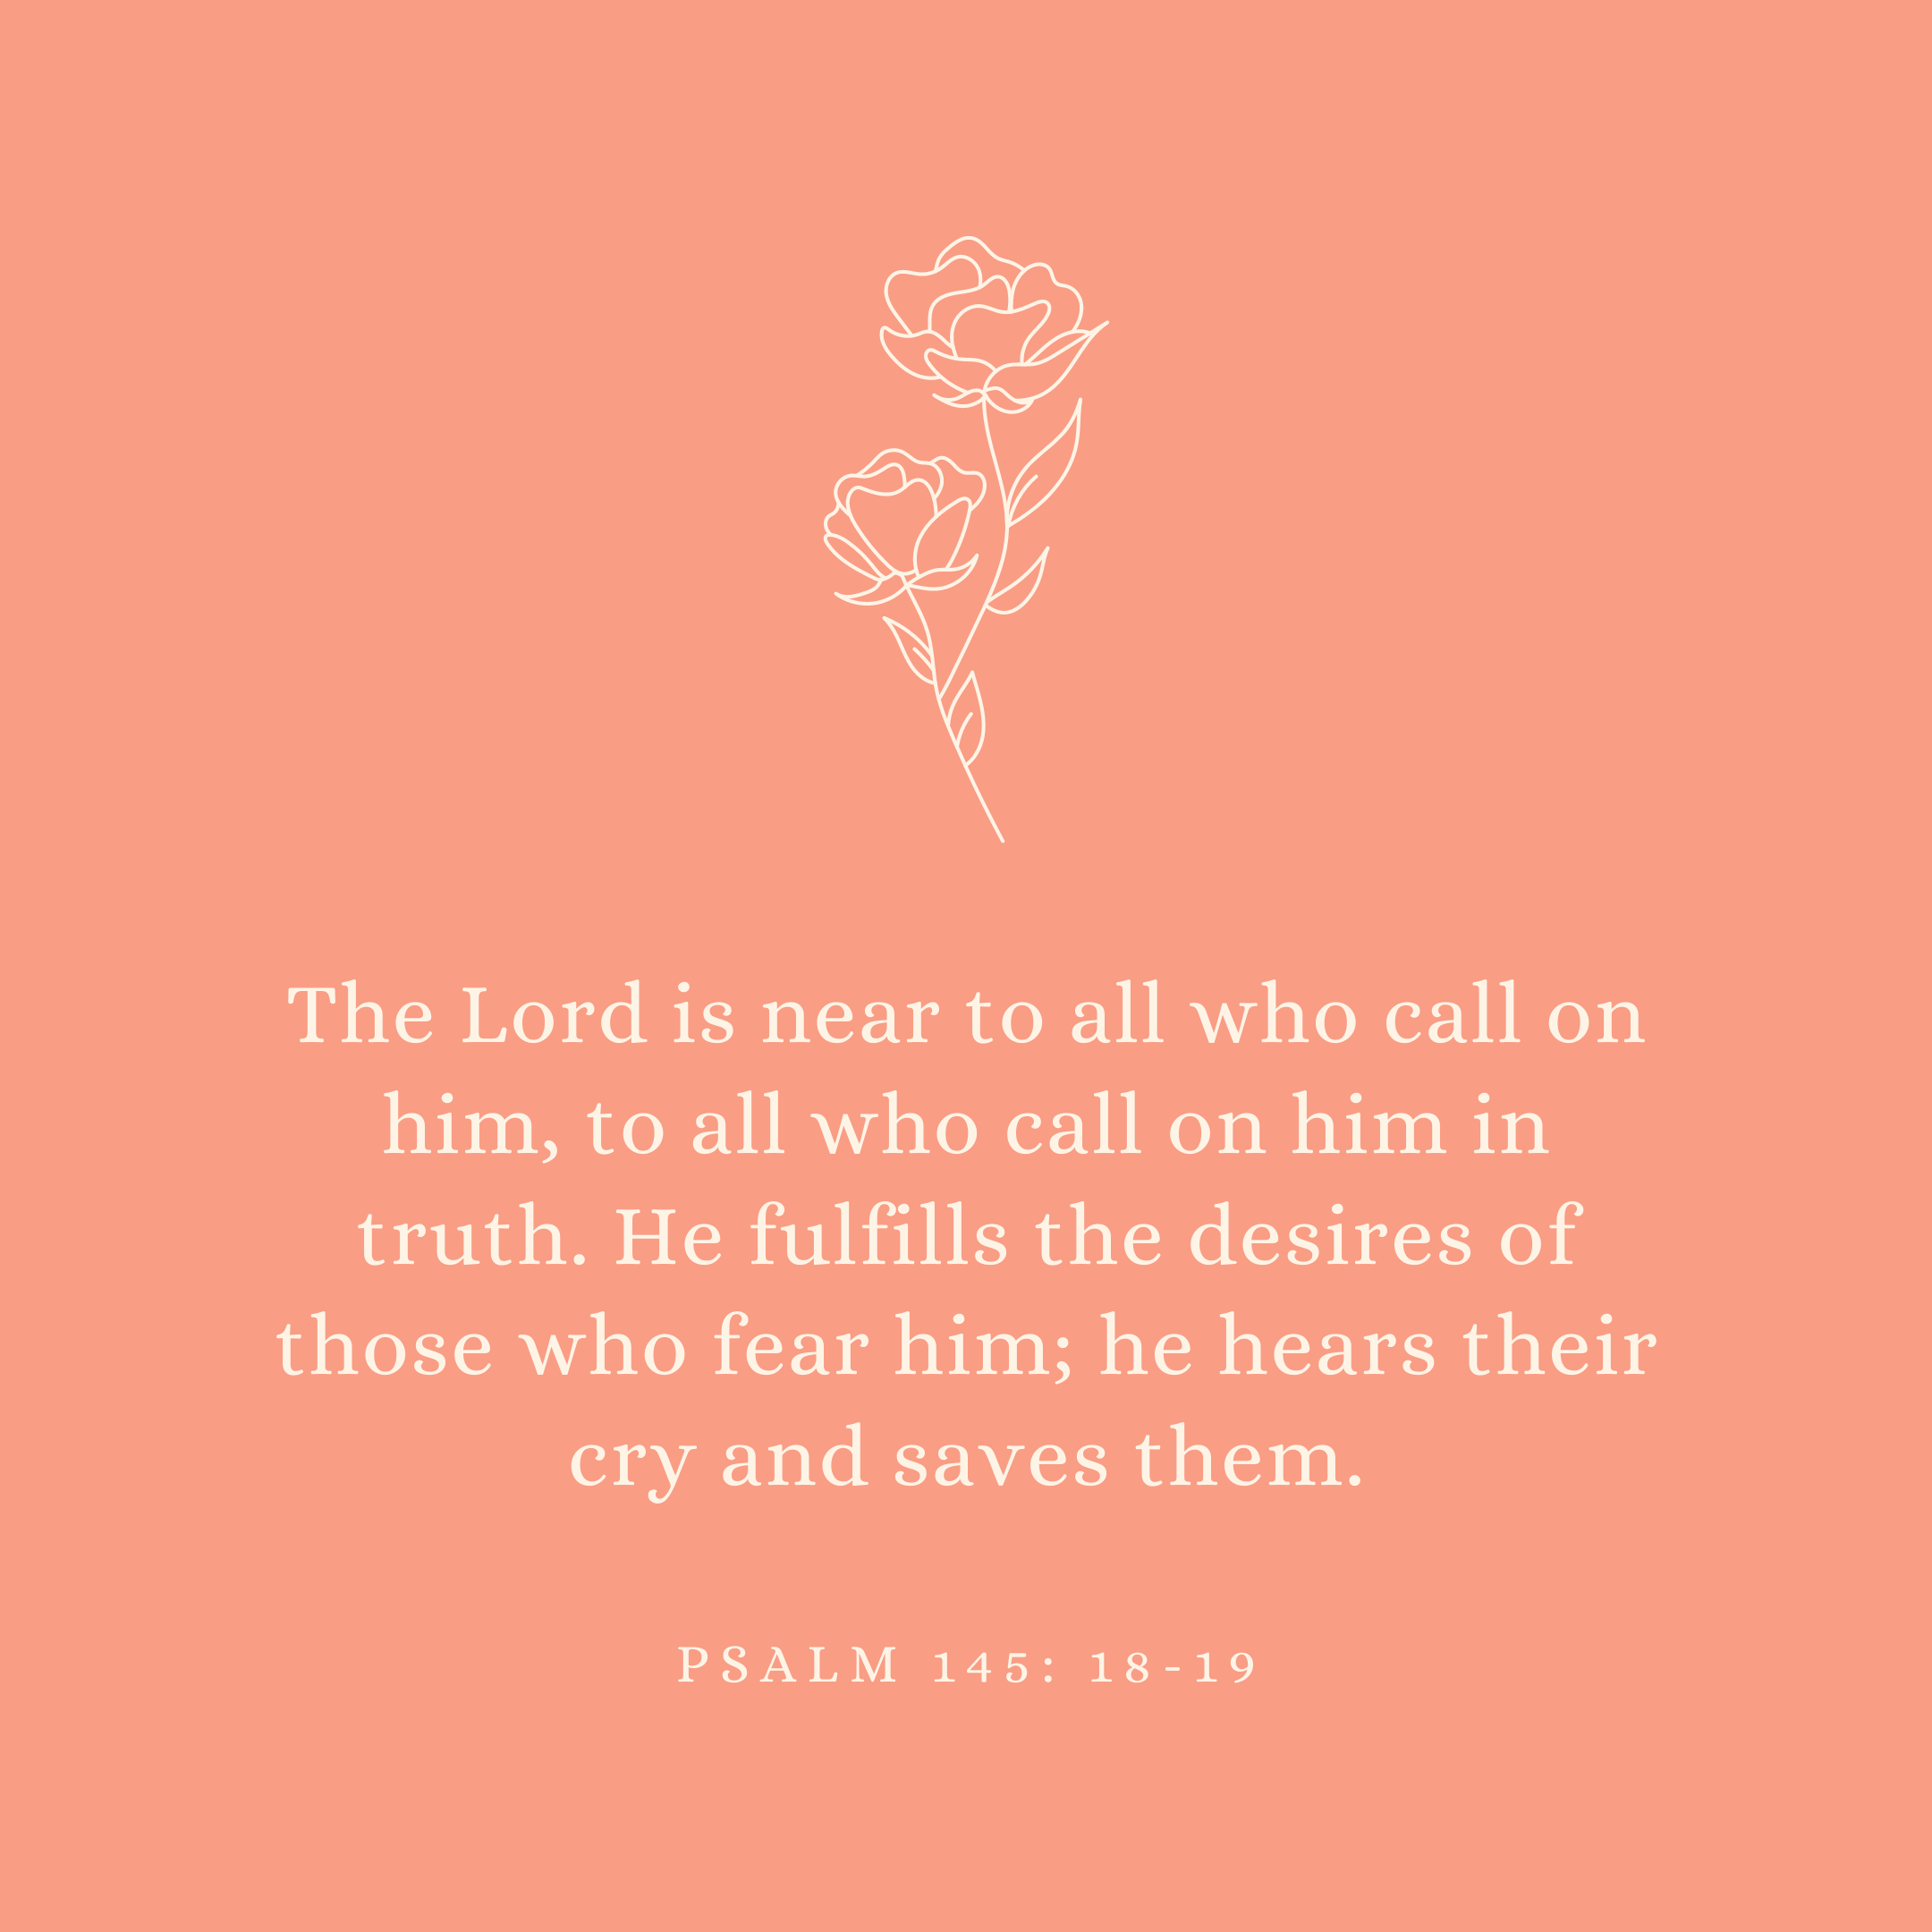 Psalm 145: 18-19 The Lord is near to all who call on him, to all who call on him in truth. He fulfills the desires of those who fear him; he hears their cry and saves them.